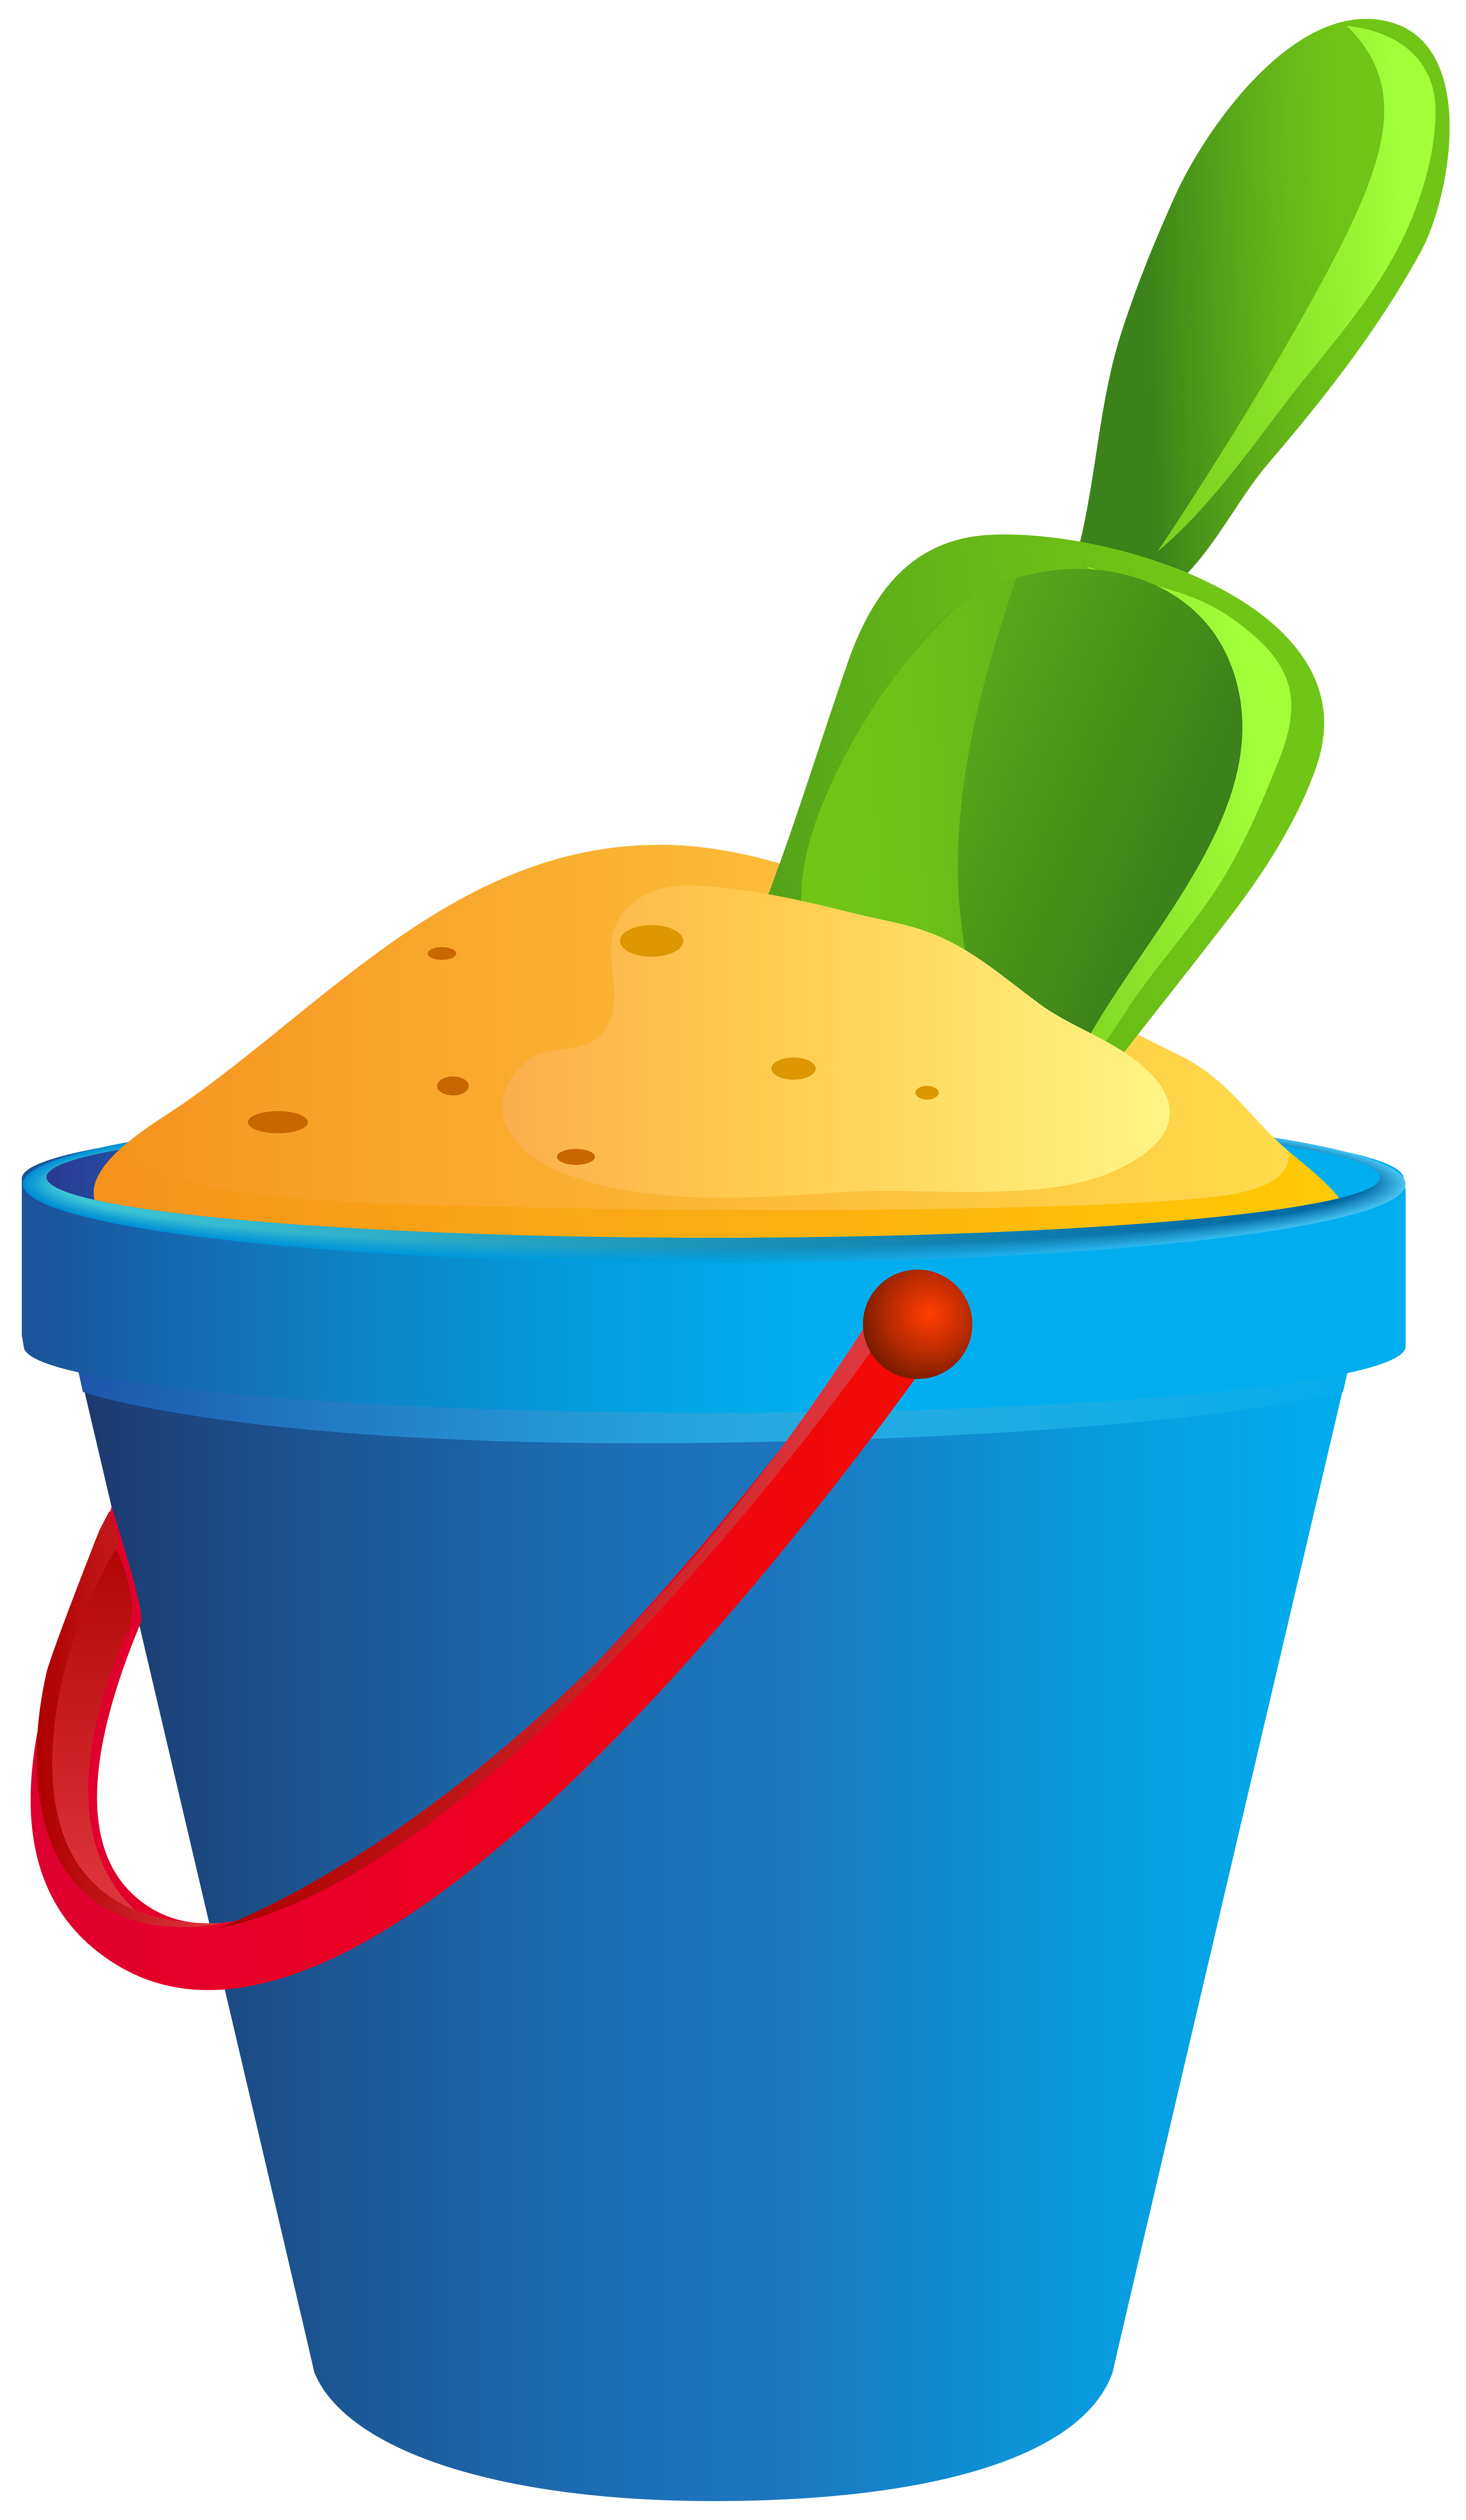 Sand bucket clip art clipart images gallery for free.